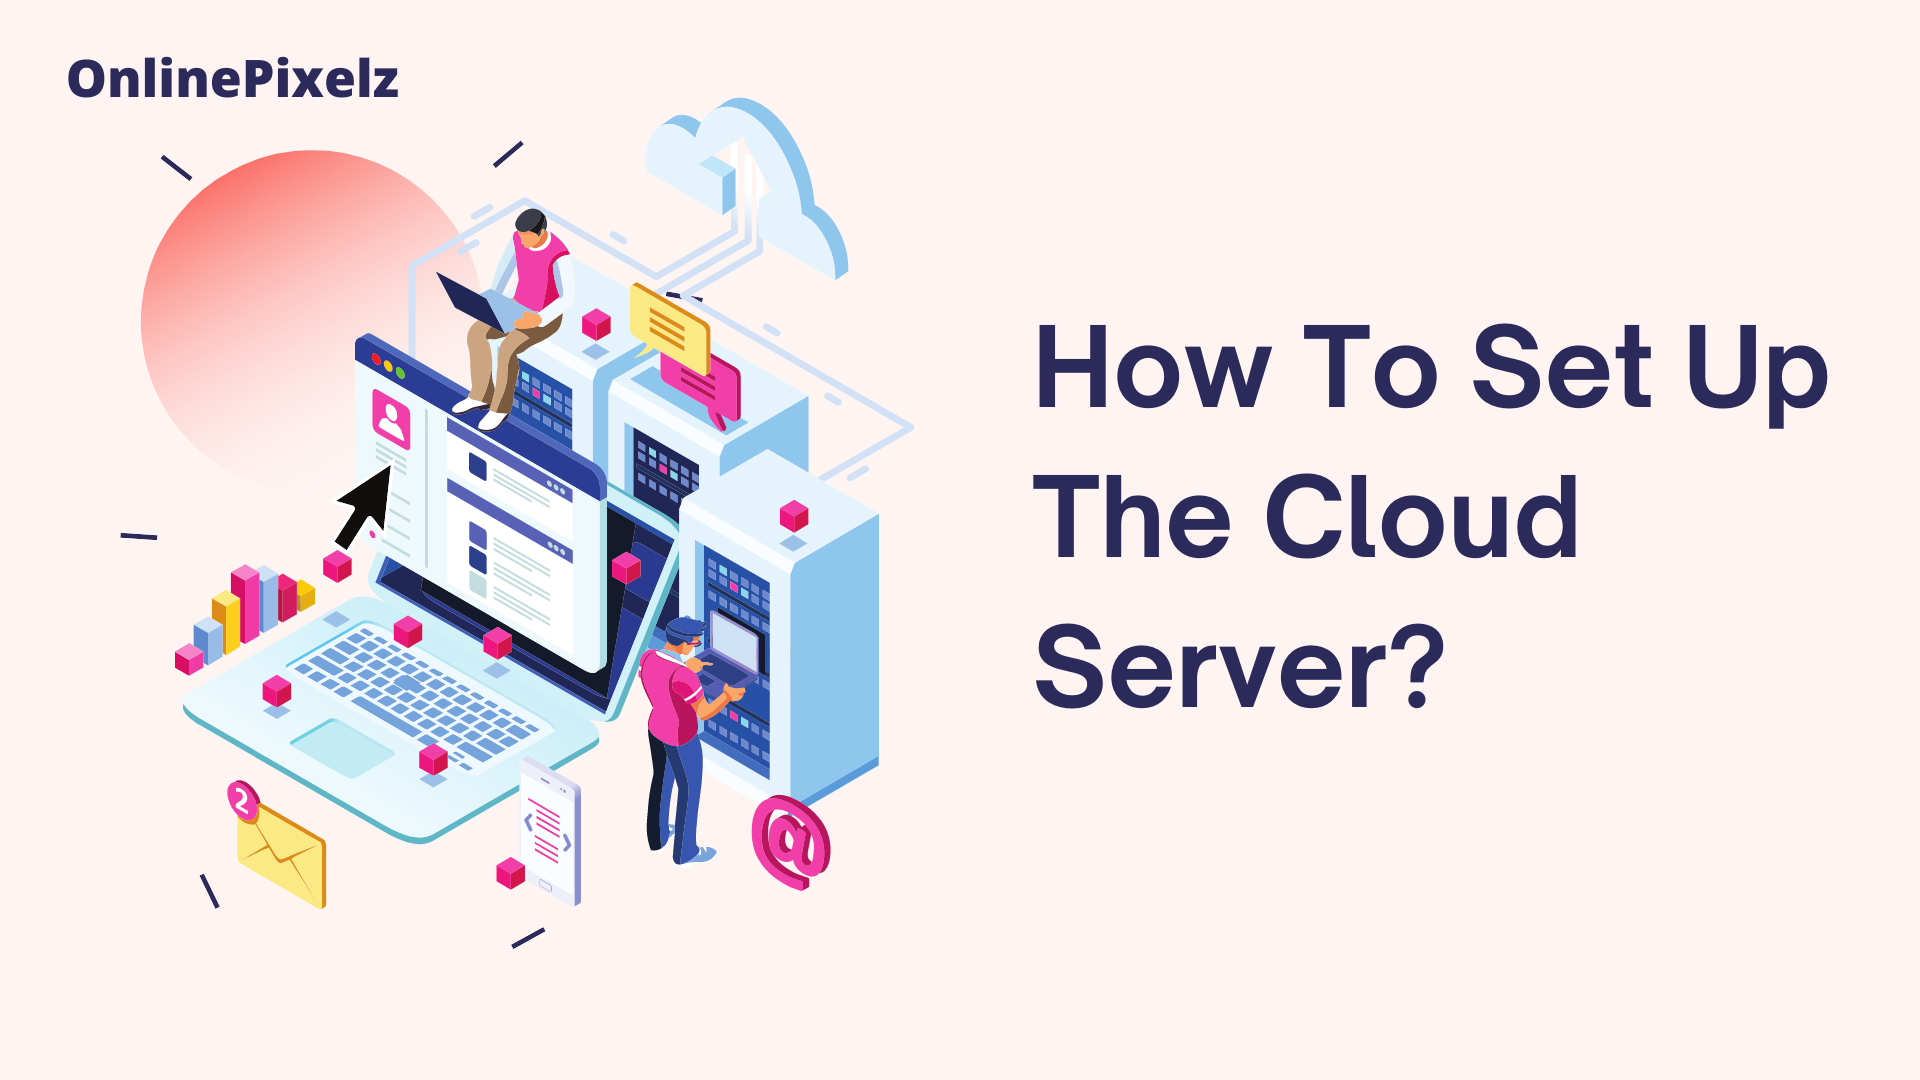 How To Set Up The Cloud Server